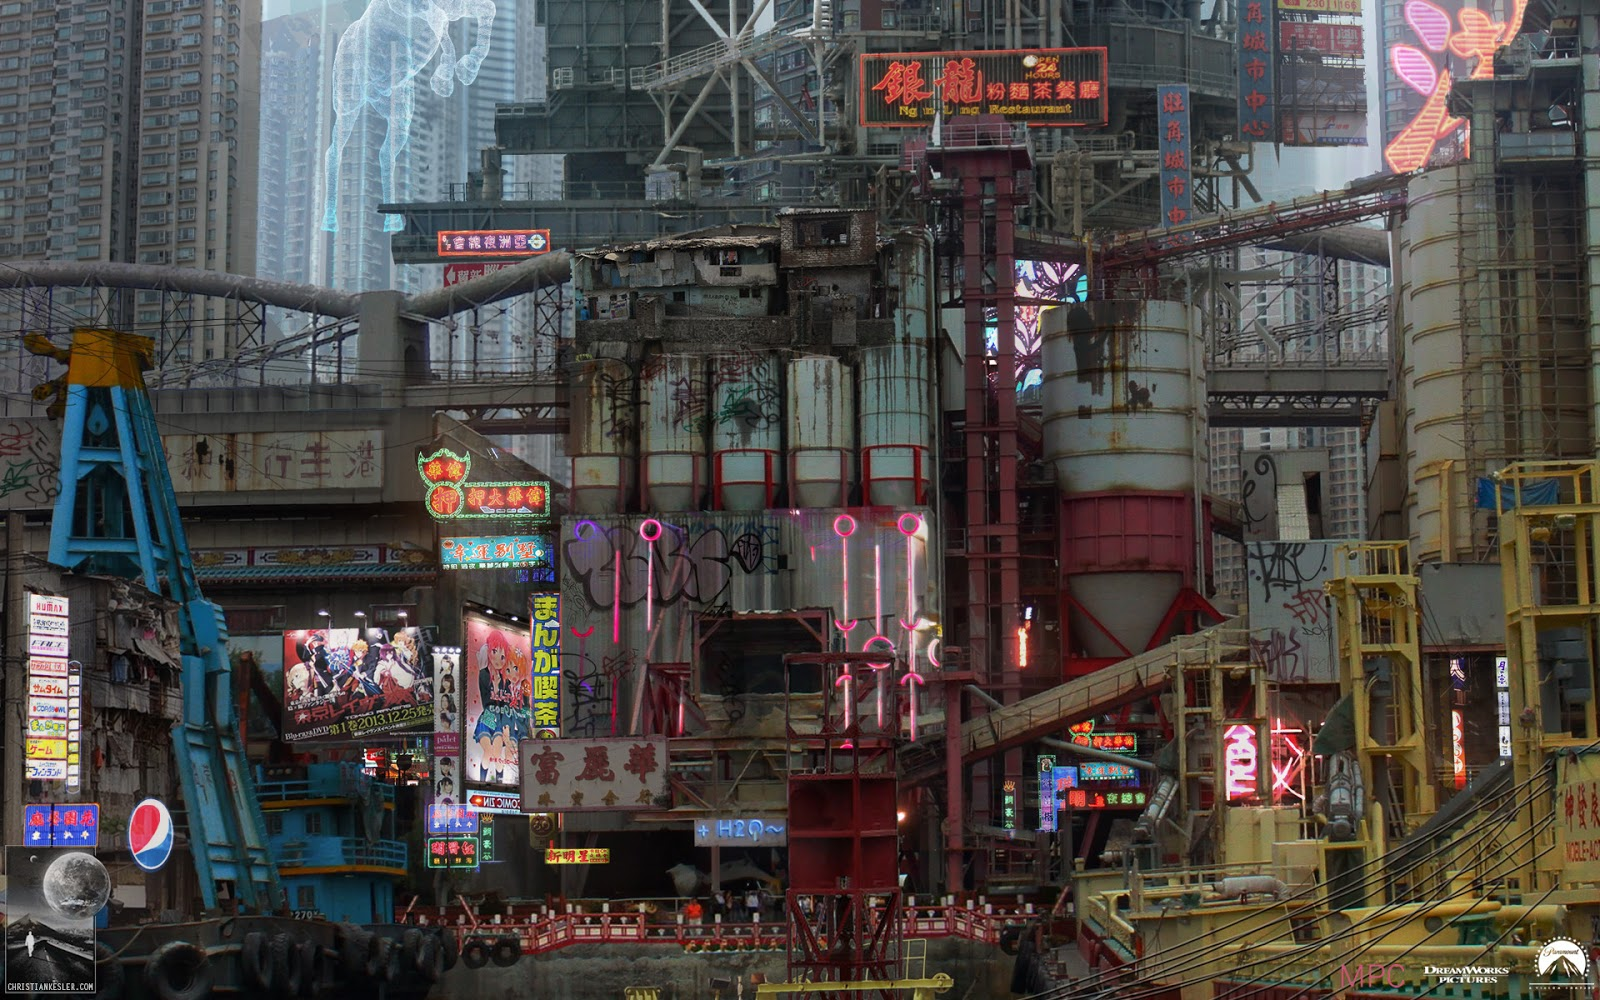 Ghost In The Shell Concept Art By Chris Kesler Computer Graphics Daily News